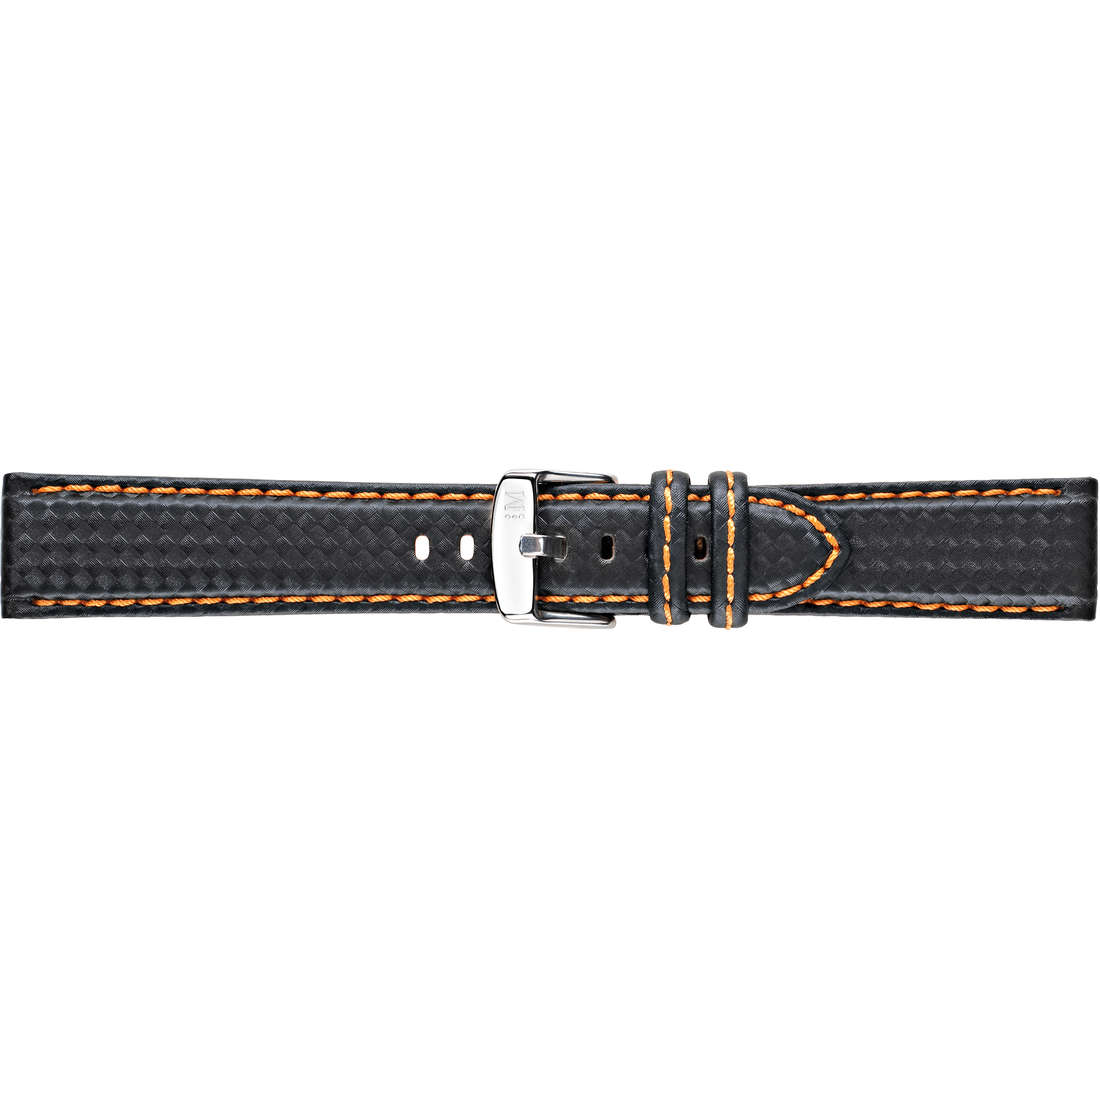 watch watch bands watch straps man Morellato Linea Sport A01U3586977886CR24